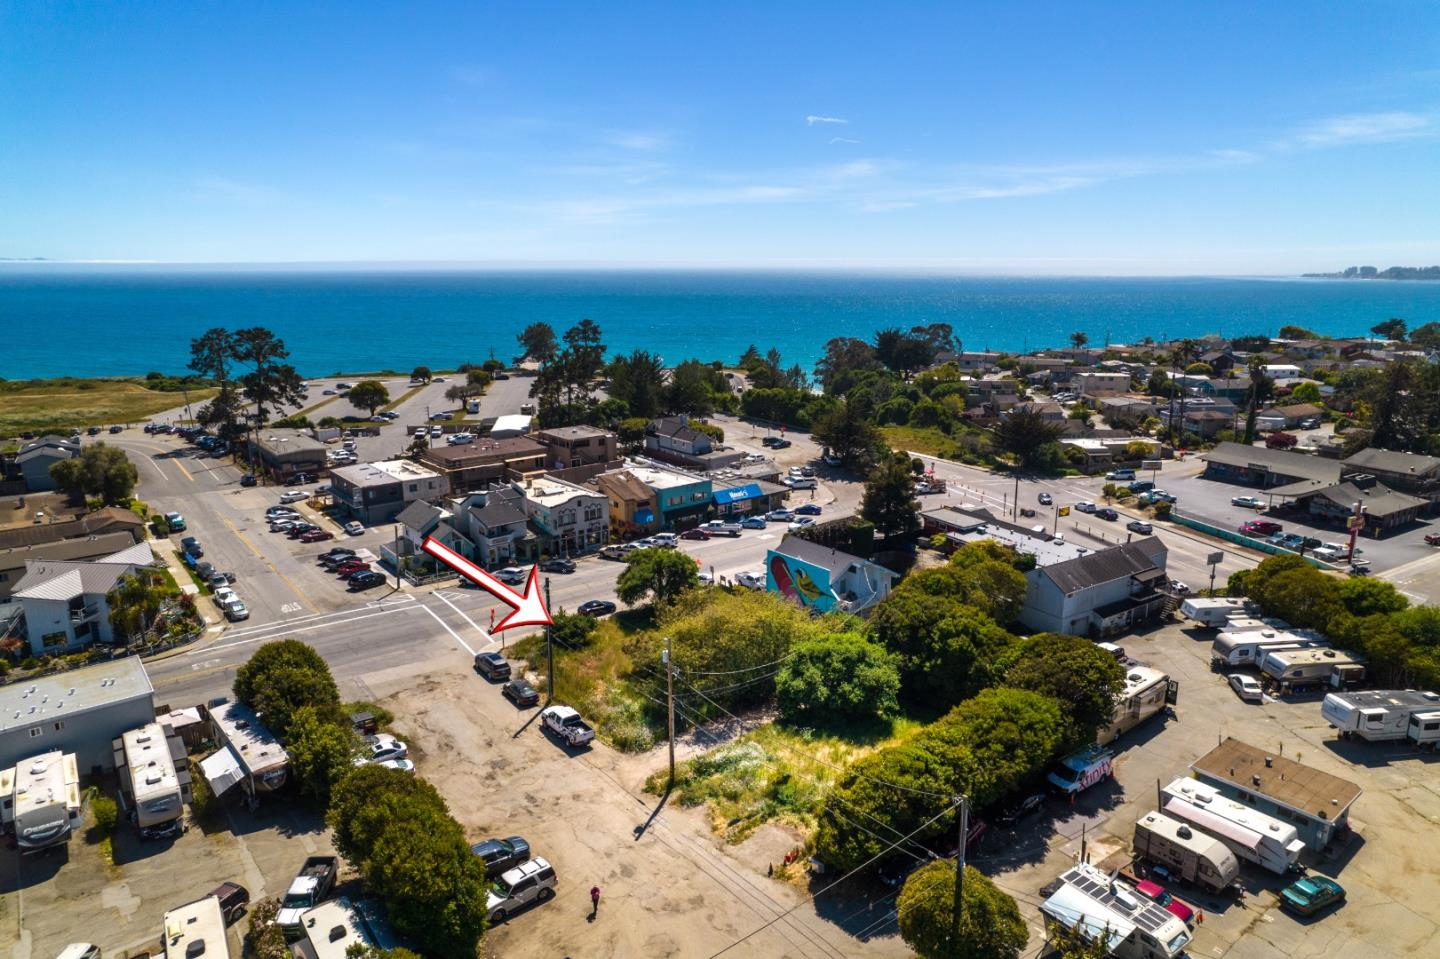 Exceptional Seacliff location with ocean views!  Vacant commercial lot zoned C-1 with multiple development opportunities.  Approximately 19,994 square foot parcel, just under 1/2 acre. Steps to the white sand beaches of Seacliff State Park and in the heart of one of Santa Cruz's most famous beach towns, Seacliff Beach.  Large, level parcel with multiple thriving and long standing businesses surrounding this future development site including Manuel's Mexican Restaurant and Marianne's Ice Cream.  Just outside the main entrance to California State Park Seacliff Beach and above multi-million dollar homes of Las Olas Drive.  C-1 zoning allows a wide range of flexible development proposals including residential, commercial, retail, hotel and more.  Ocean views from a proposed second story and walk to the beach make this commercial lot a rare find.  Over 19,900 square feet with utilities available at the street level.  A+ location.